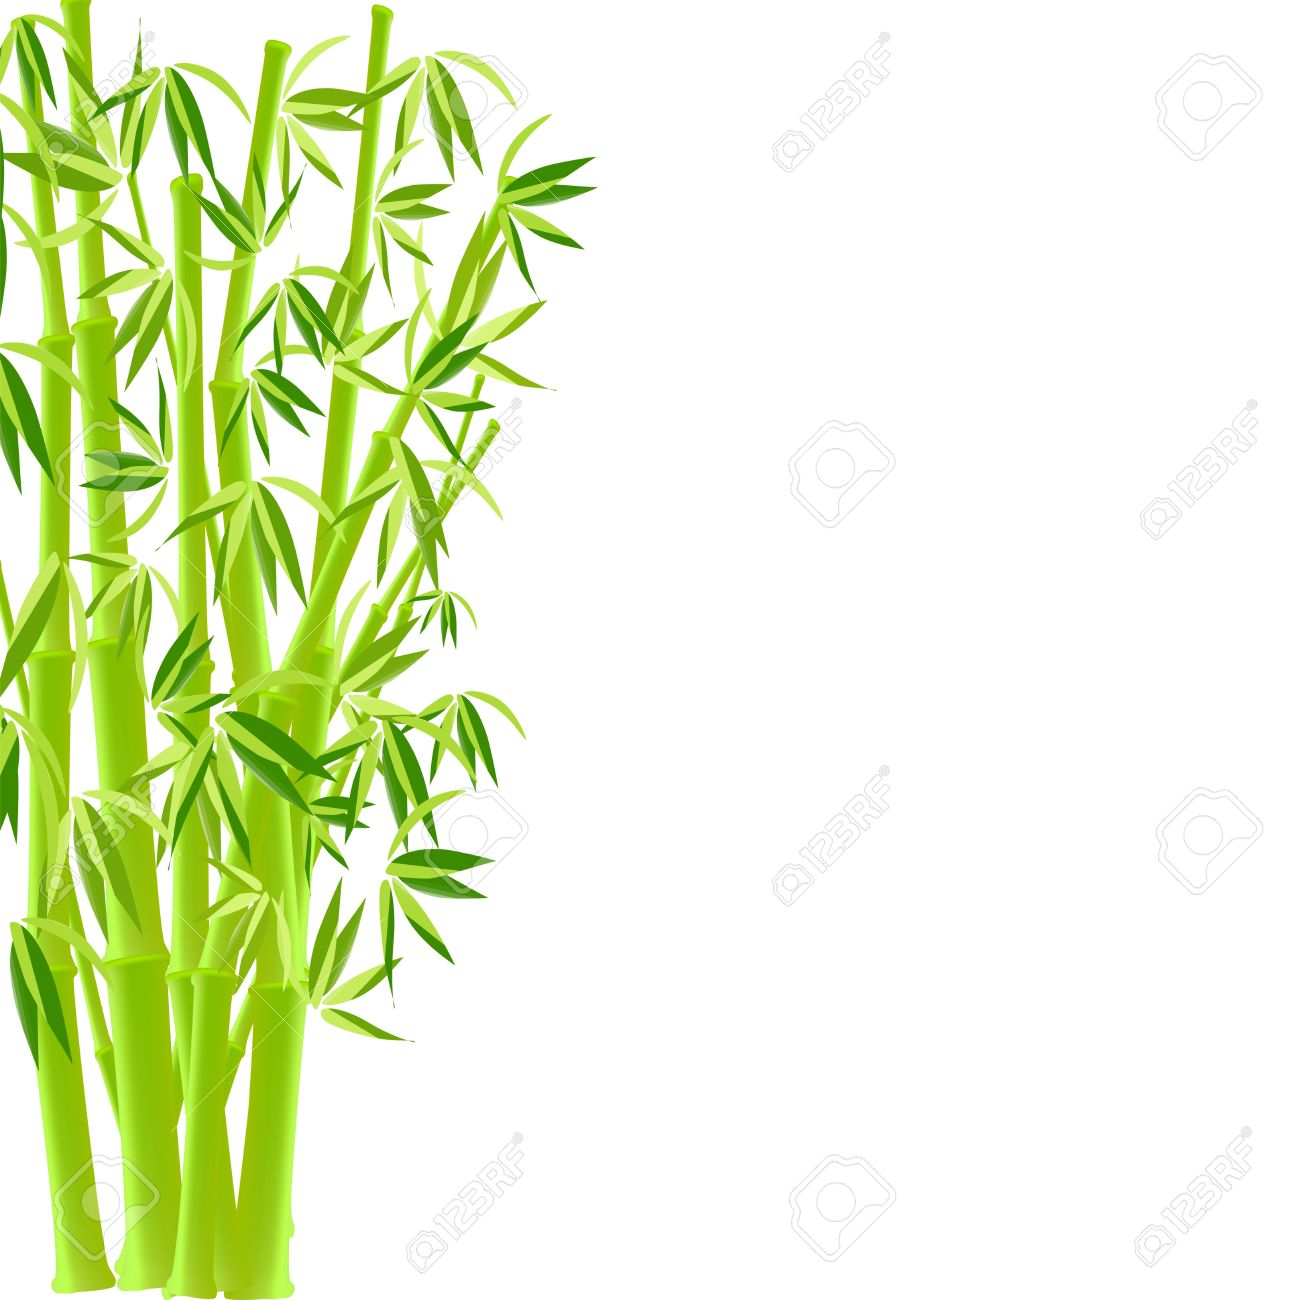 The Bamboo Tree Growth Clipart.